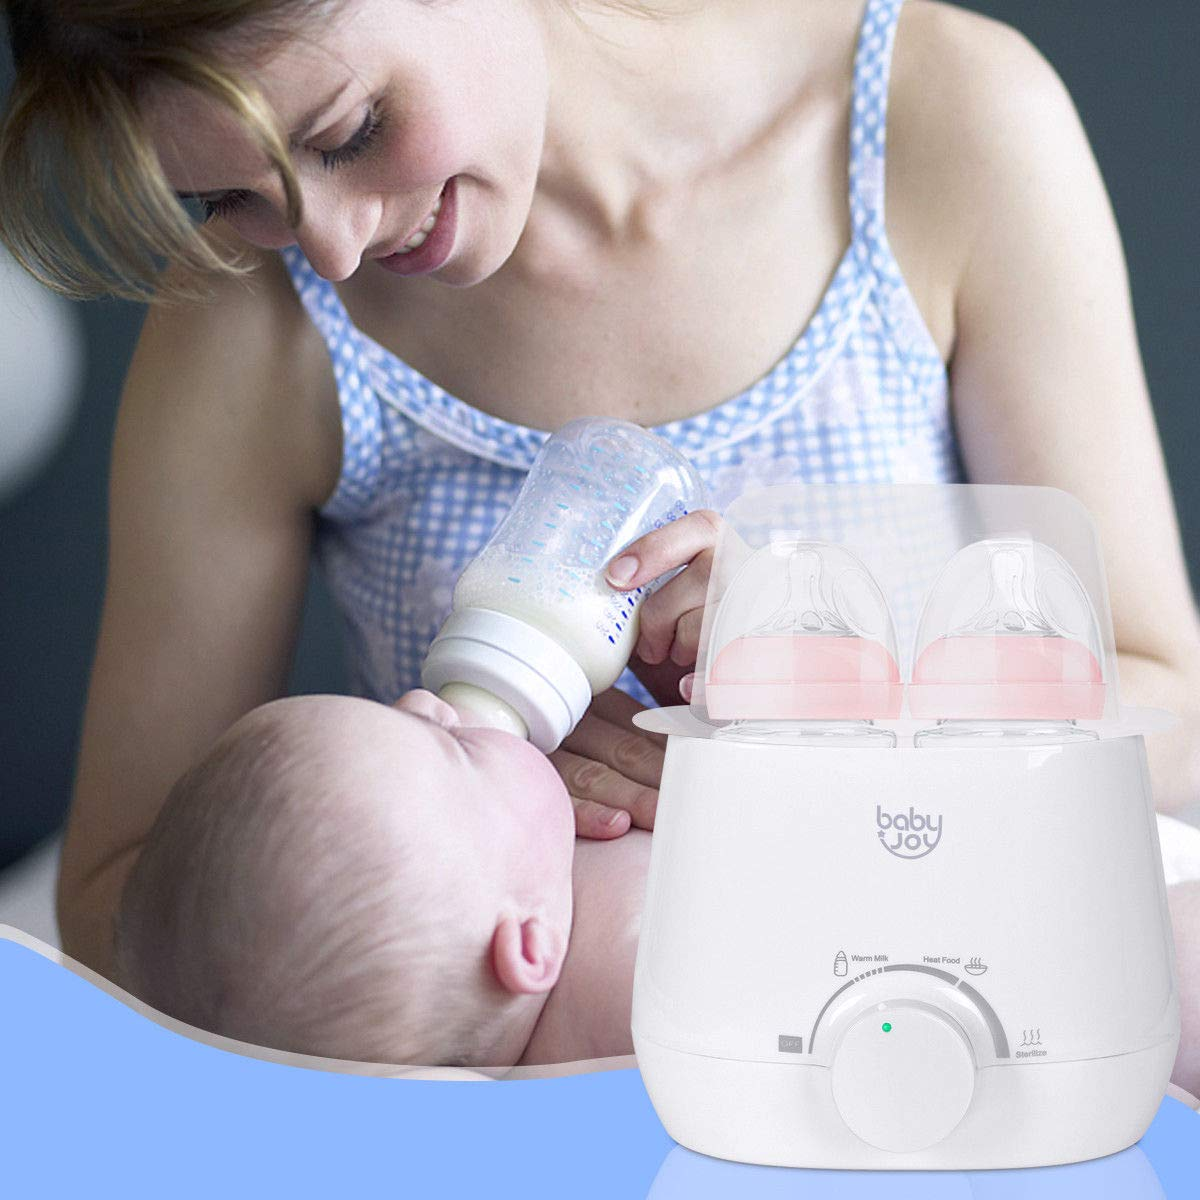 Baby Joy 3-in-1 Baby Bottle Warmer, Food Warmer, Steam Sterilizer, Portable Warming Breast Milk, Double Bottles Warmer with Accurate Temperature Control, Dry-Fire Protection by Baby & Joy (Image #8)